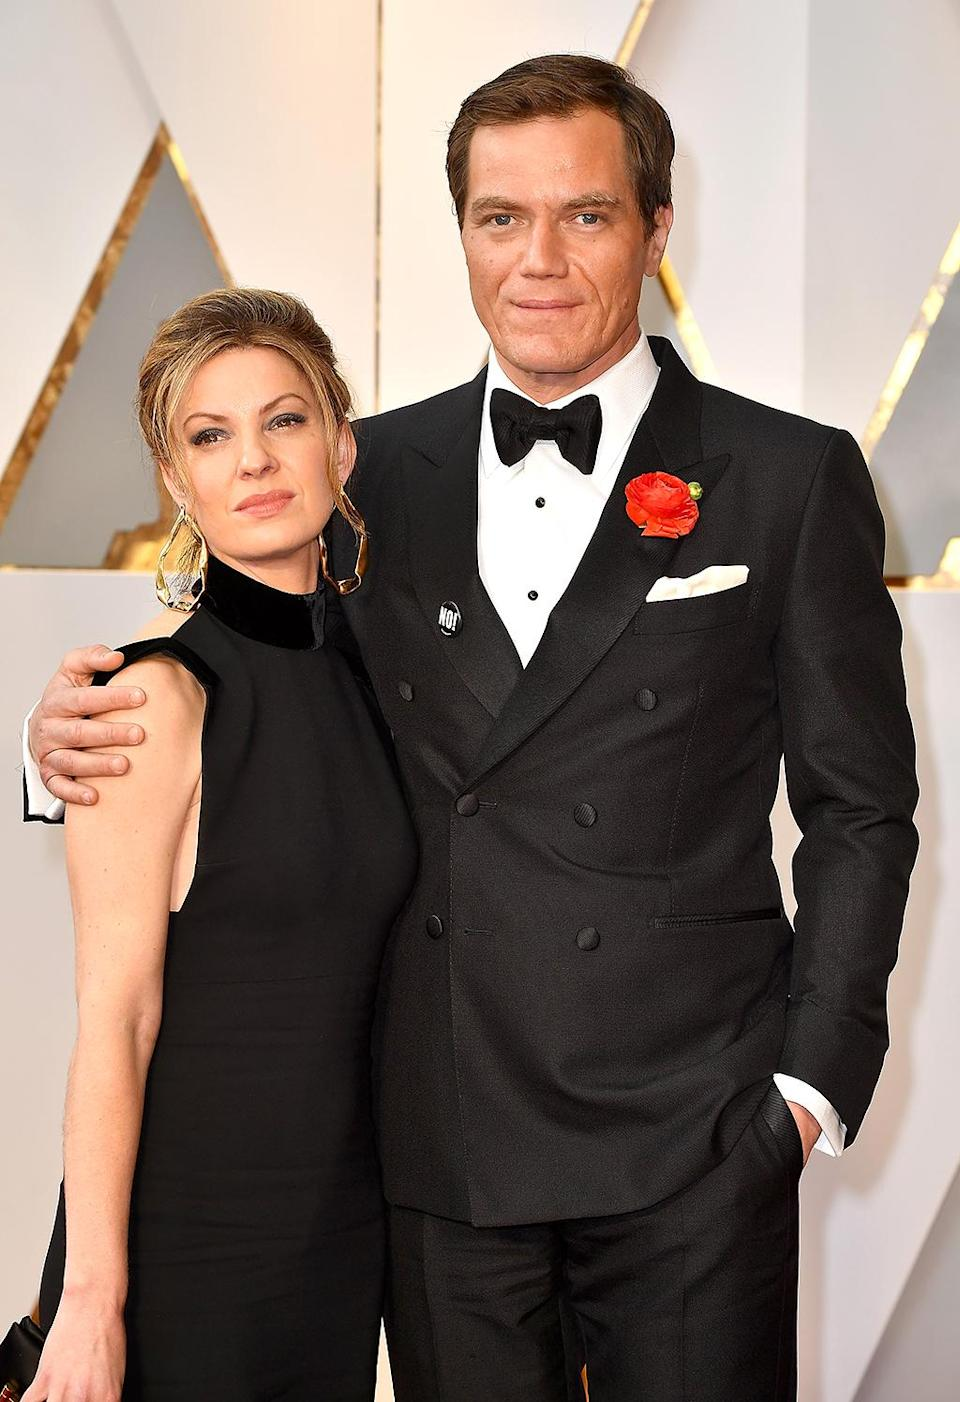 <p>Kate Arrington and Michael Shannon attend the 89th Annual Academy Awards at Hollywood & Highland Center on February 26, 2017 in Hollywood, California. (Photo by Jeff Kravitz/FilmMagic) </p>